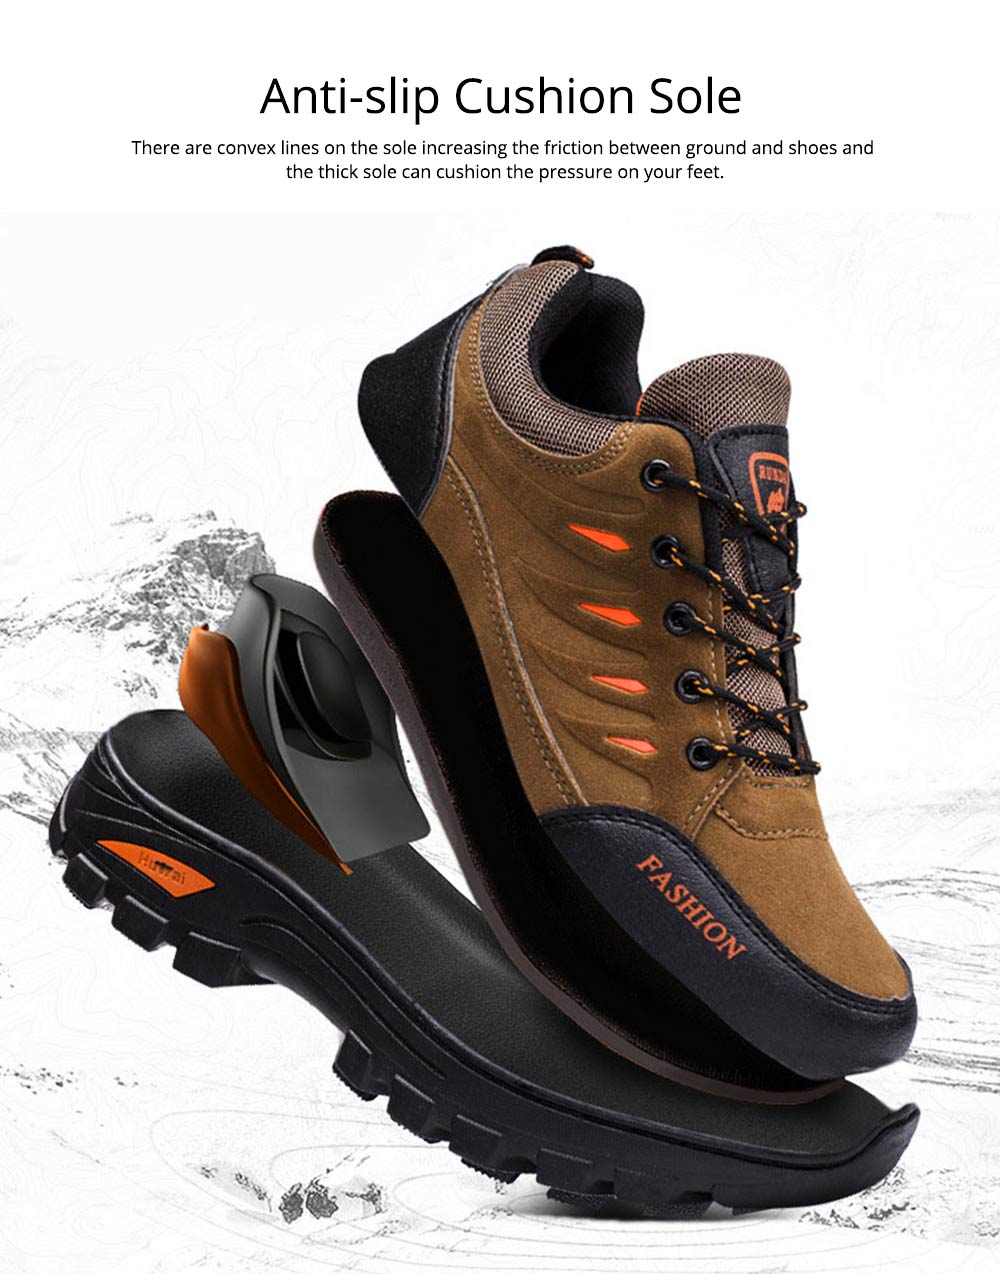 Outdoors Casual Traveling Men Hiking Shoes, Wearable Anti-slip Walking Trekking Sneakers for Men 3